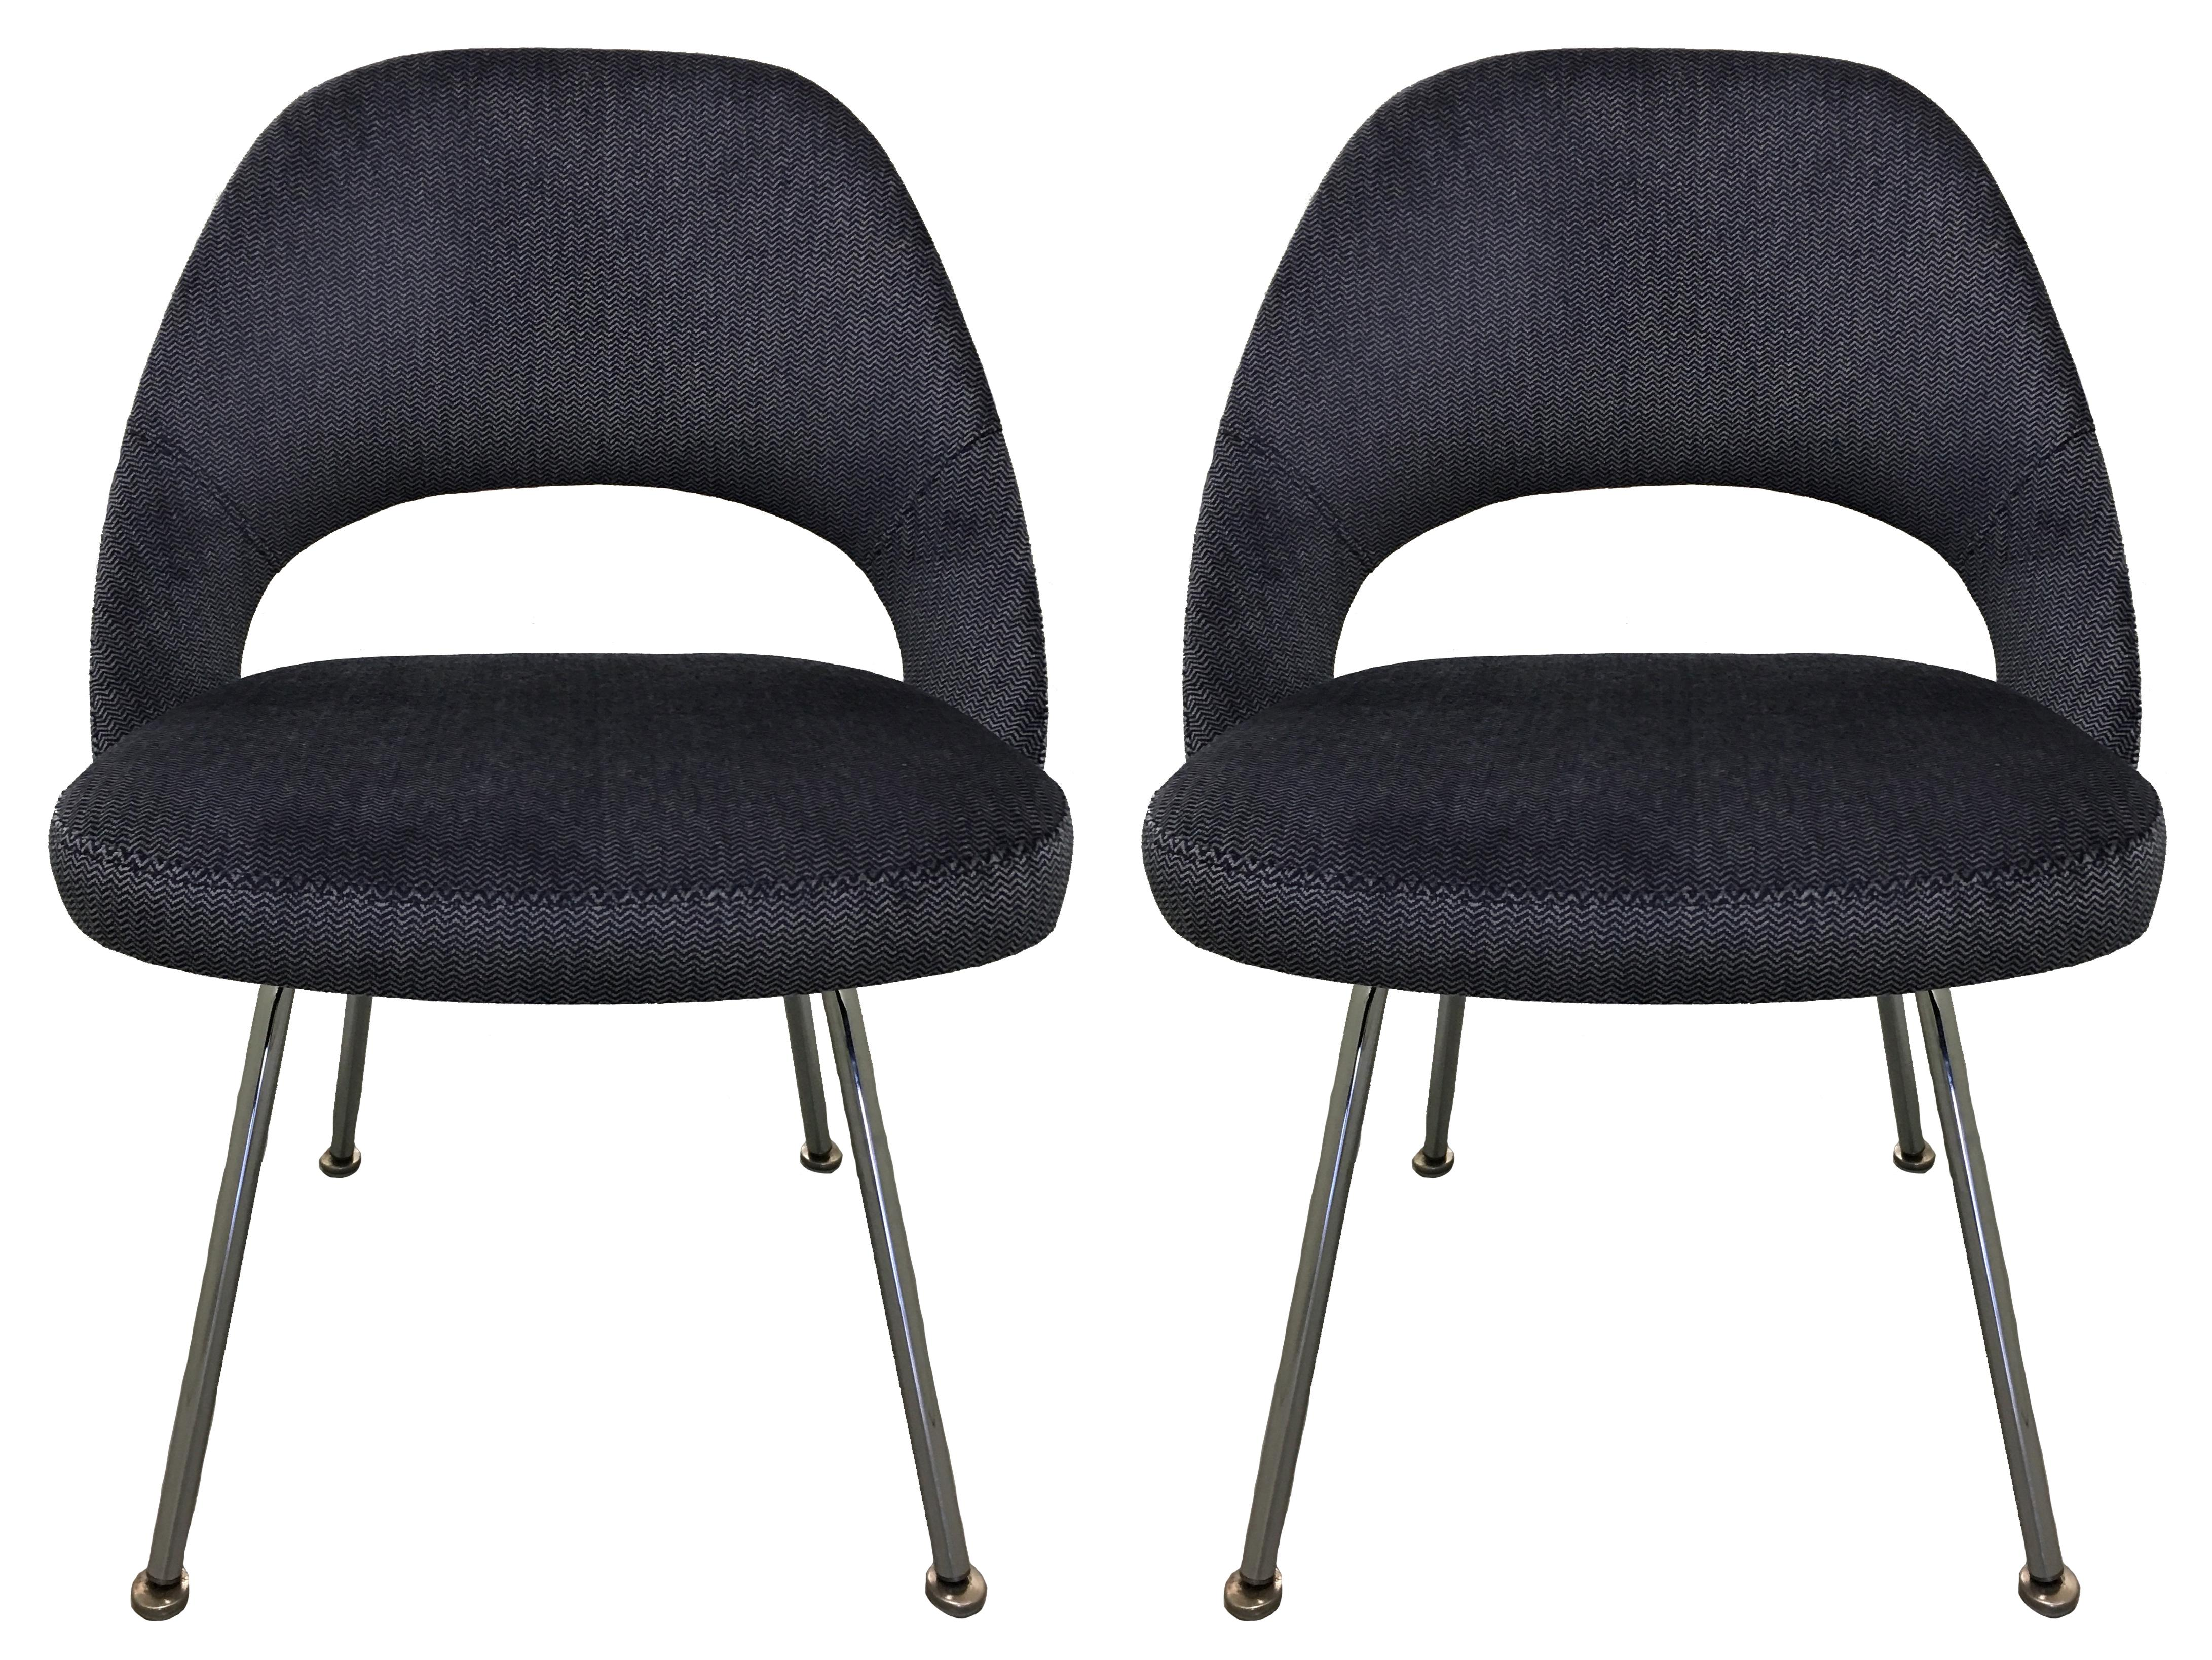 1960 Knoll Saarinen Executive Side Chairs   Set Of 4   Image 2 Of 9